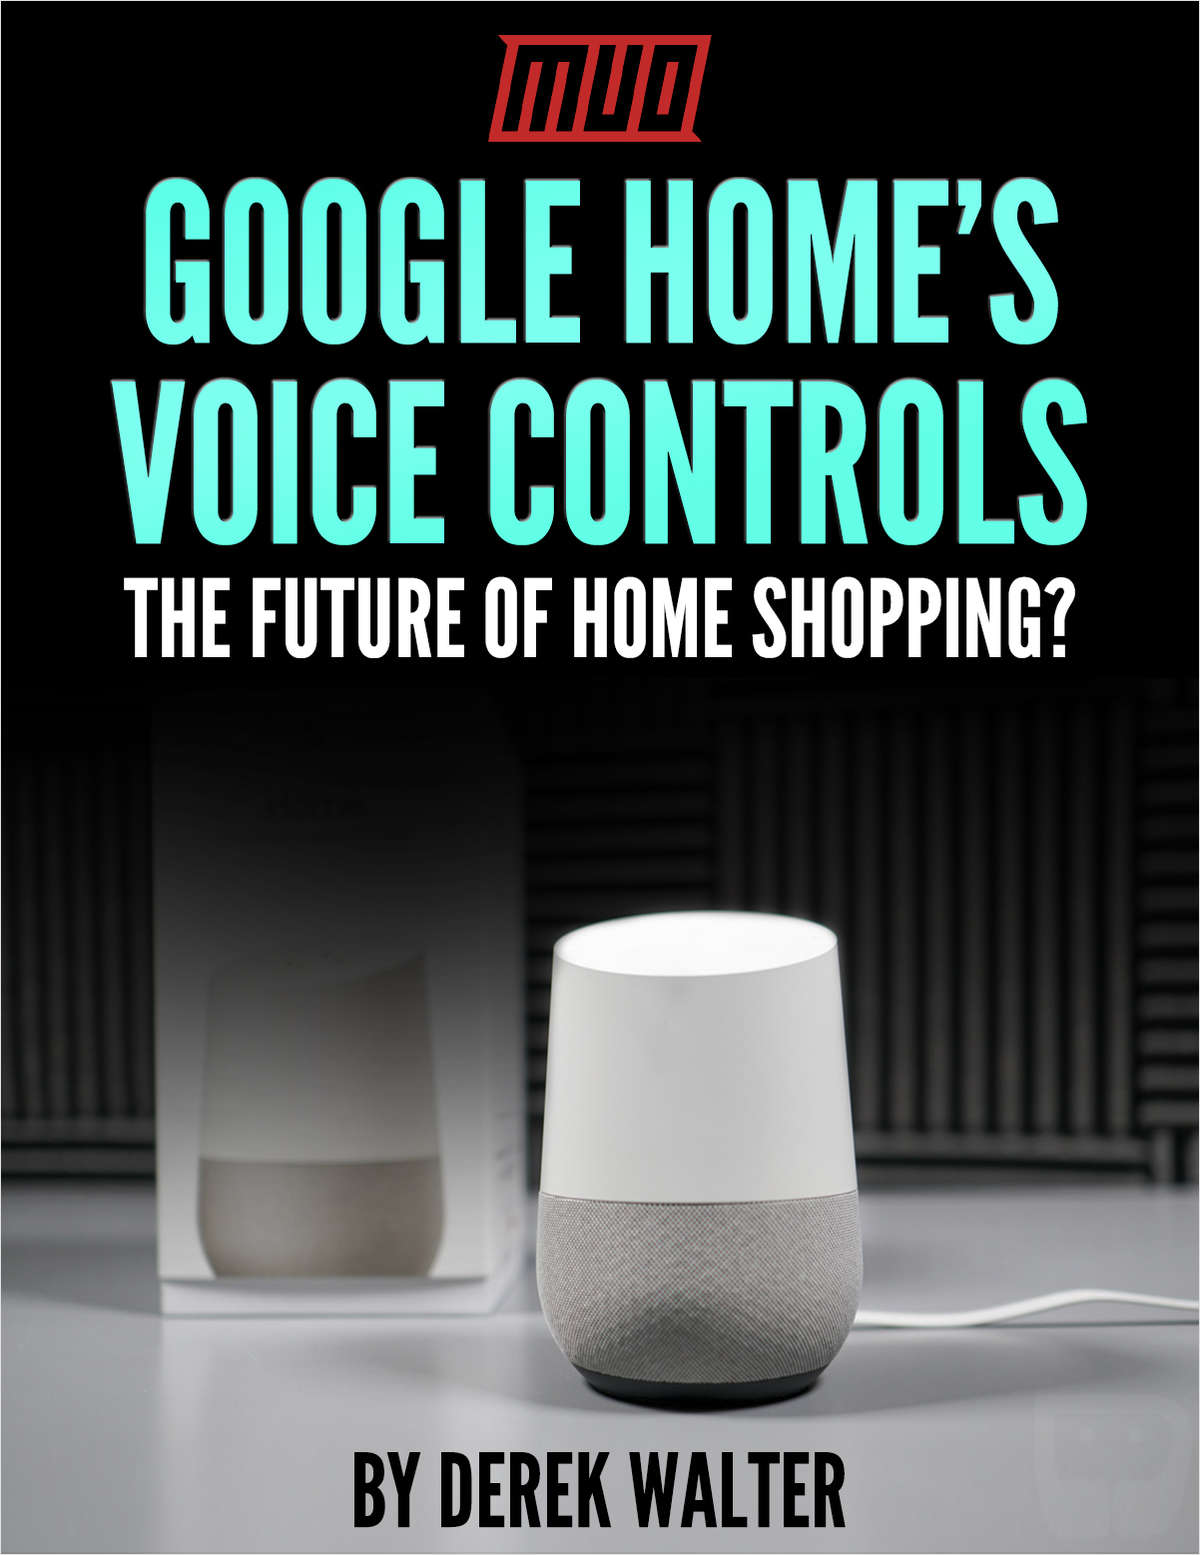 Google Home's Voice Controls - The Future of Home Shopping?